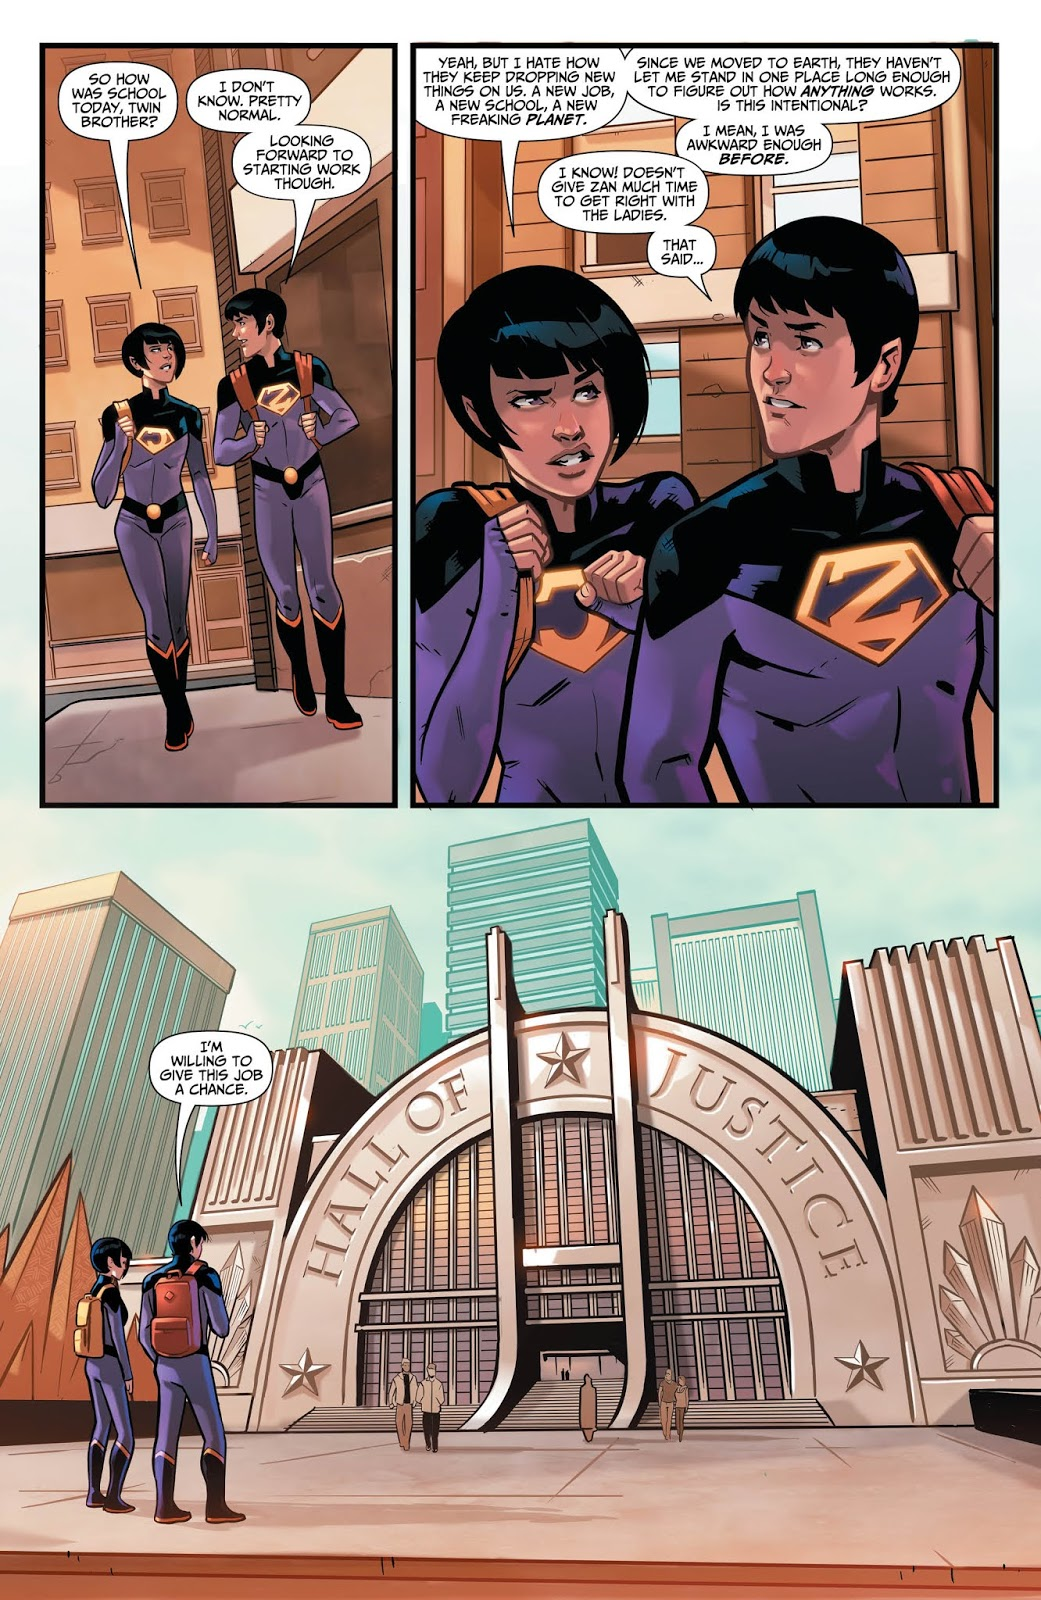 WONDER TWINS #1 Page 5. Image Courtesy of DC Entertainment.